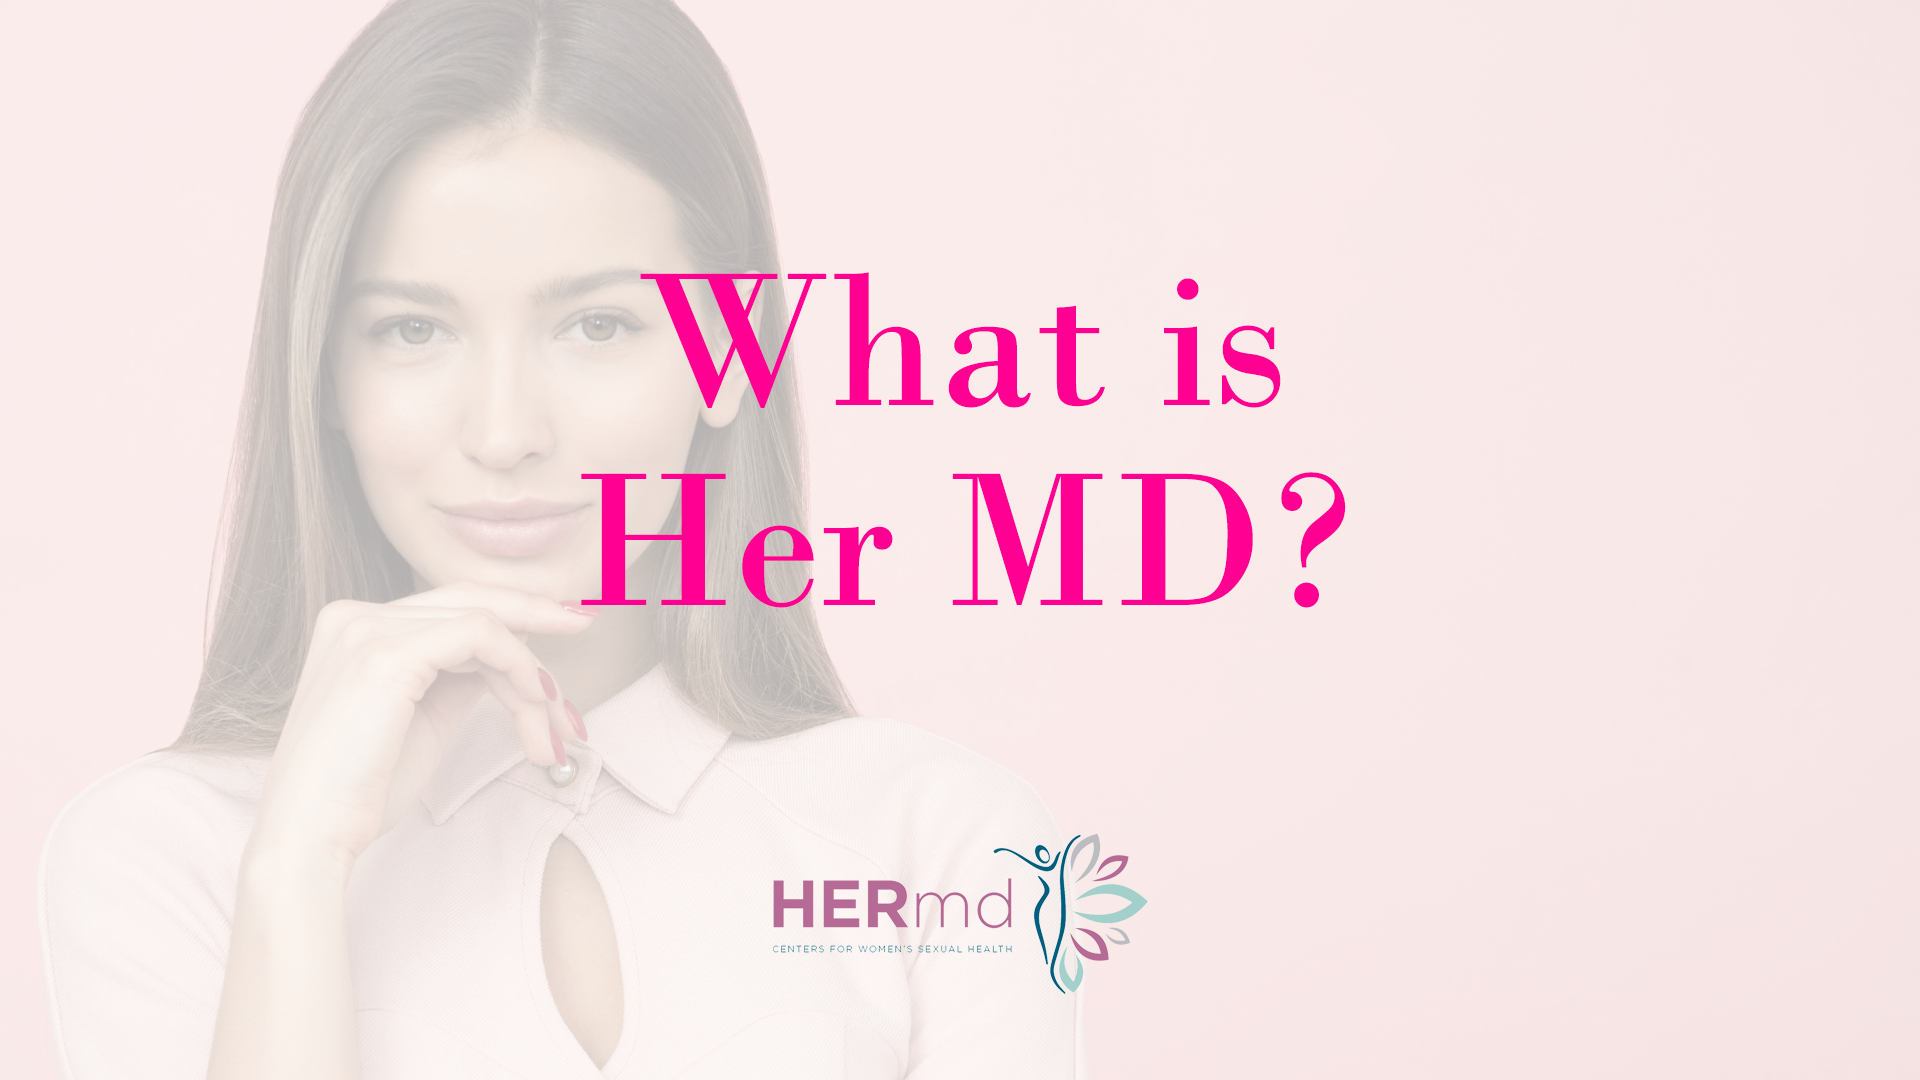 What is Her MD?